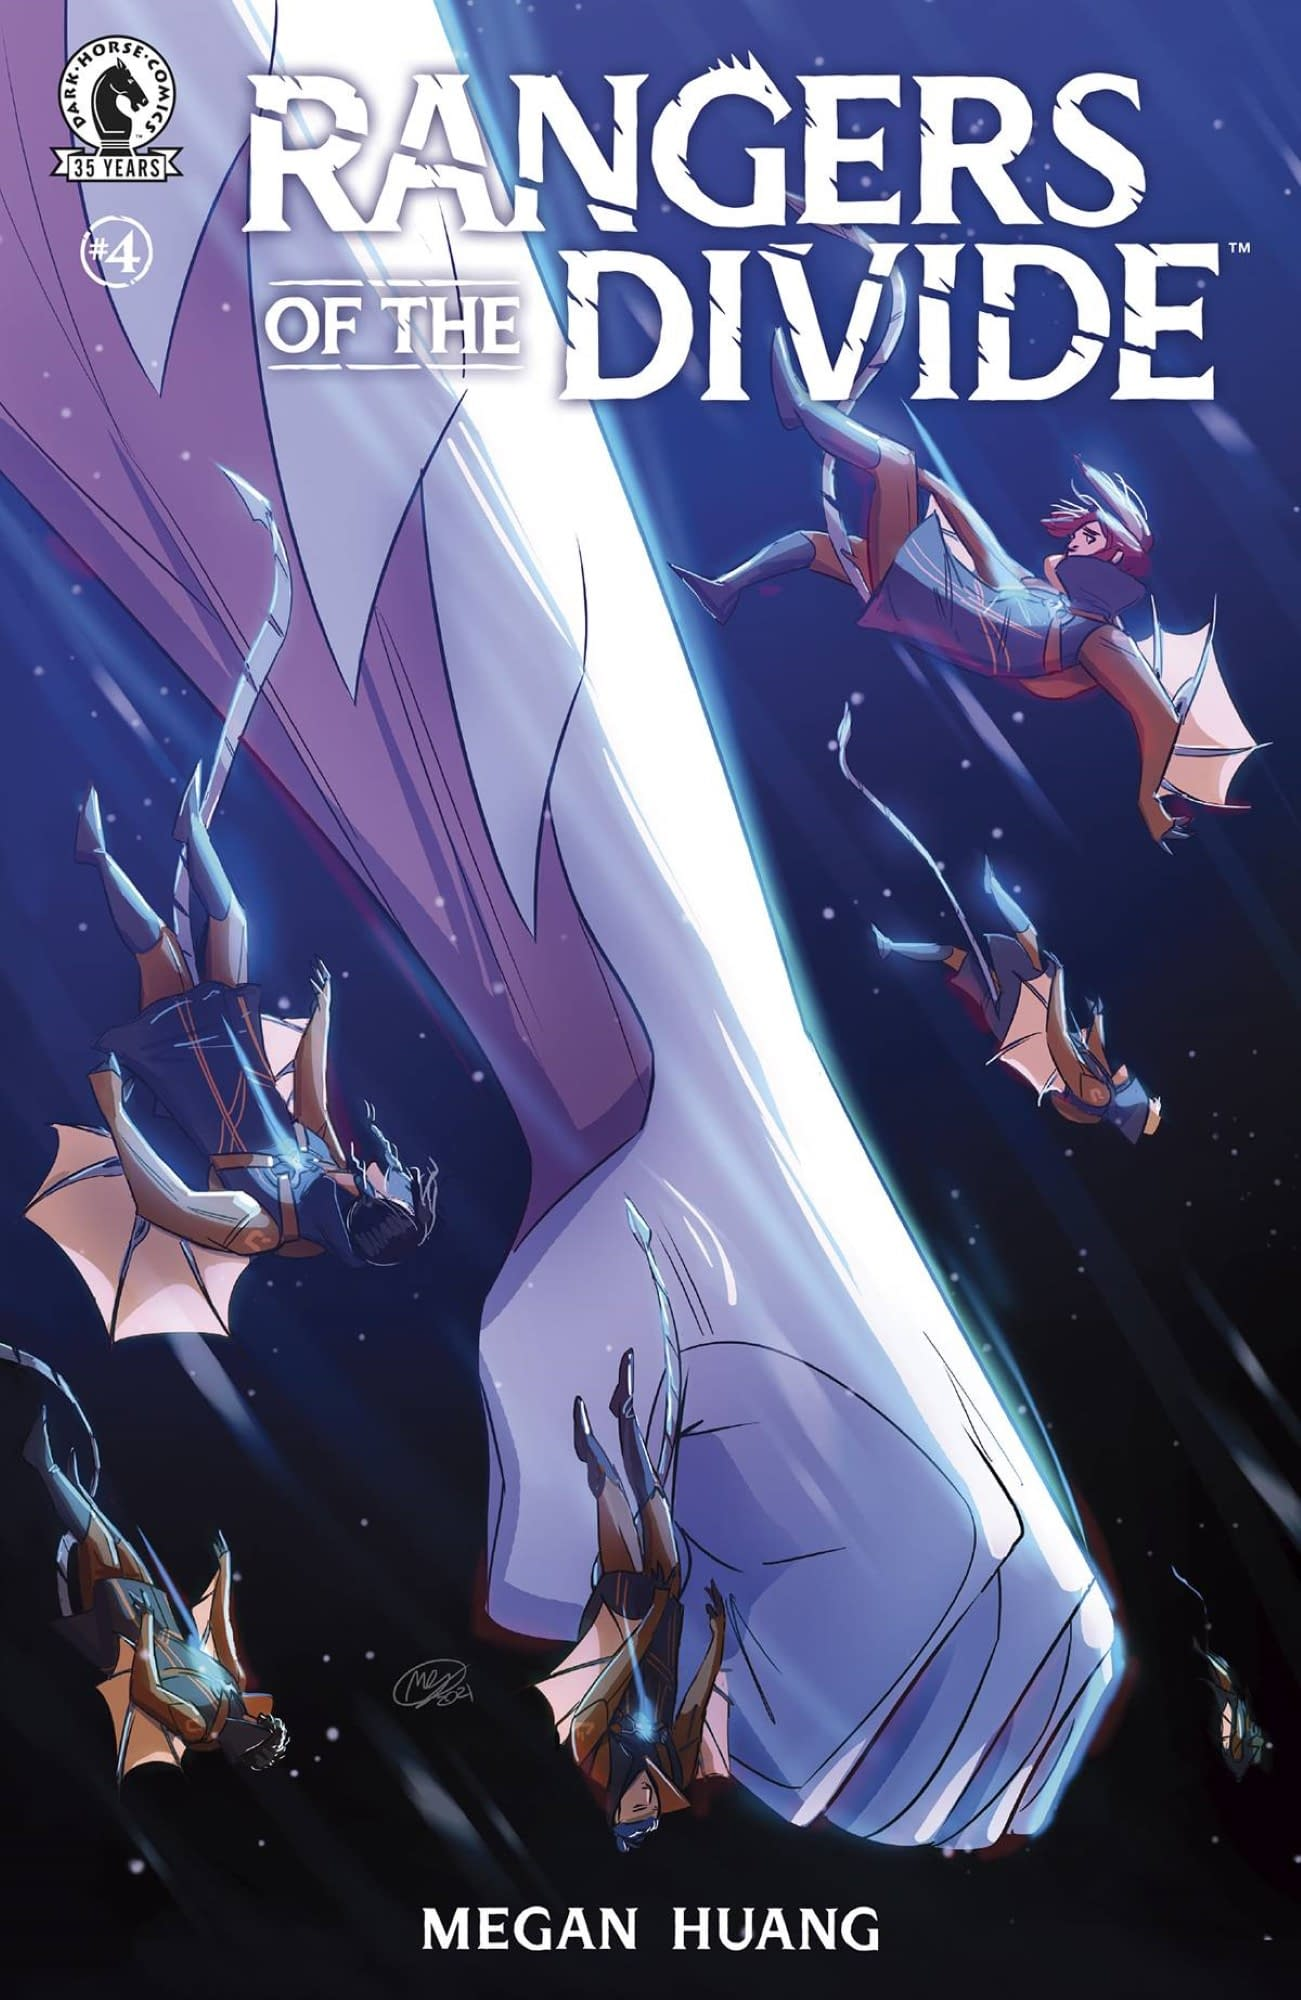 RANGERS OF THE DIVIDE #4 (OF 4)